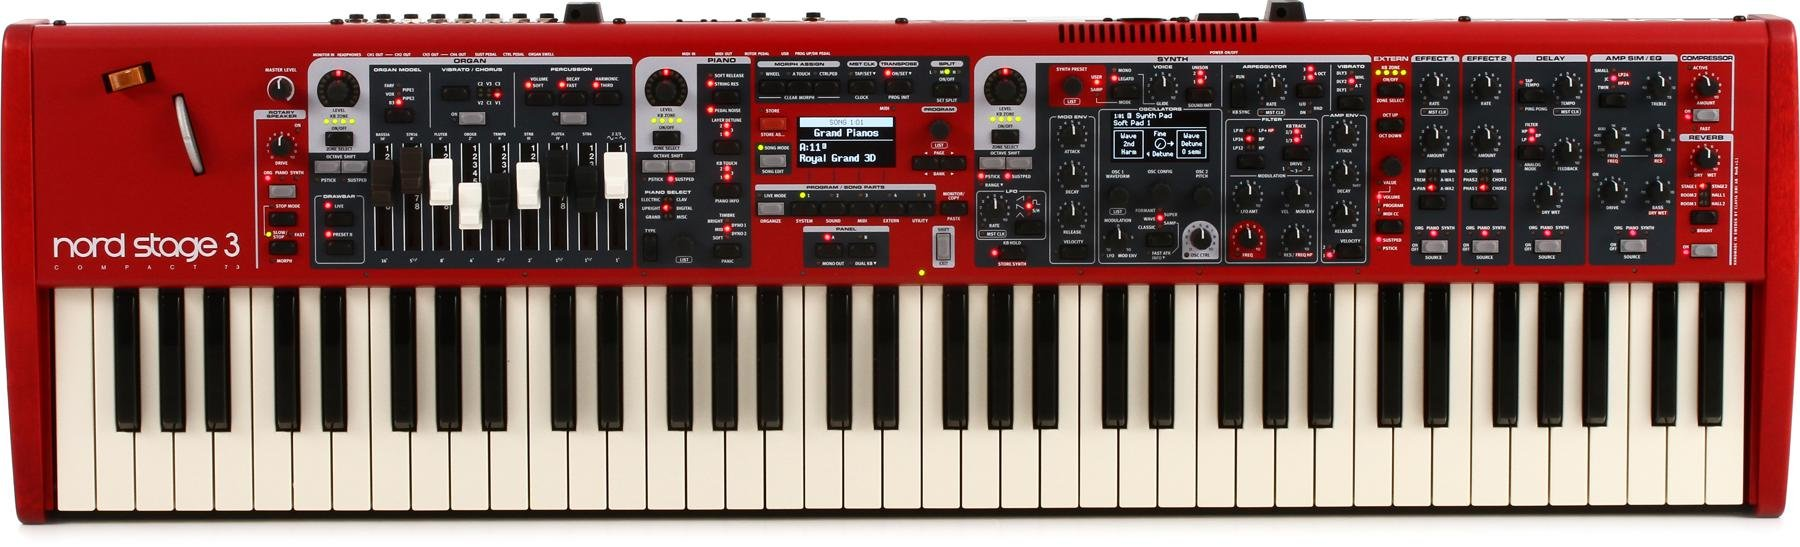 Nord Stage 3 Compact Stage Keyboard | Sweetwater